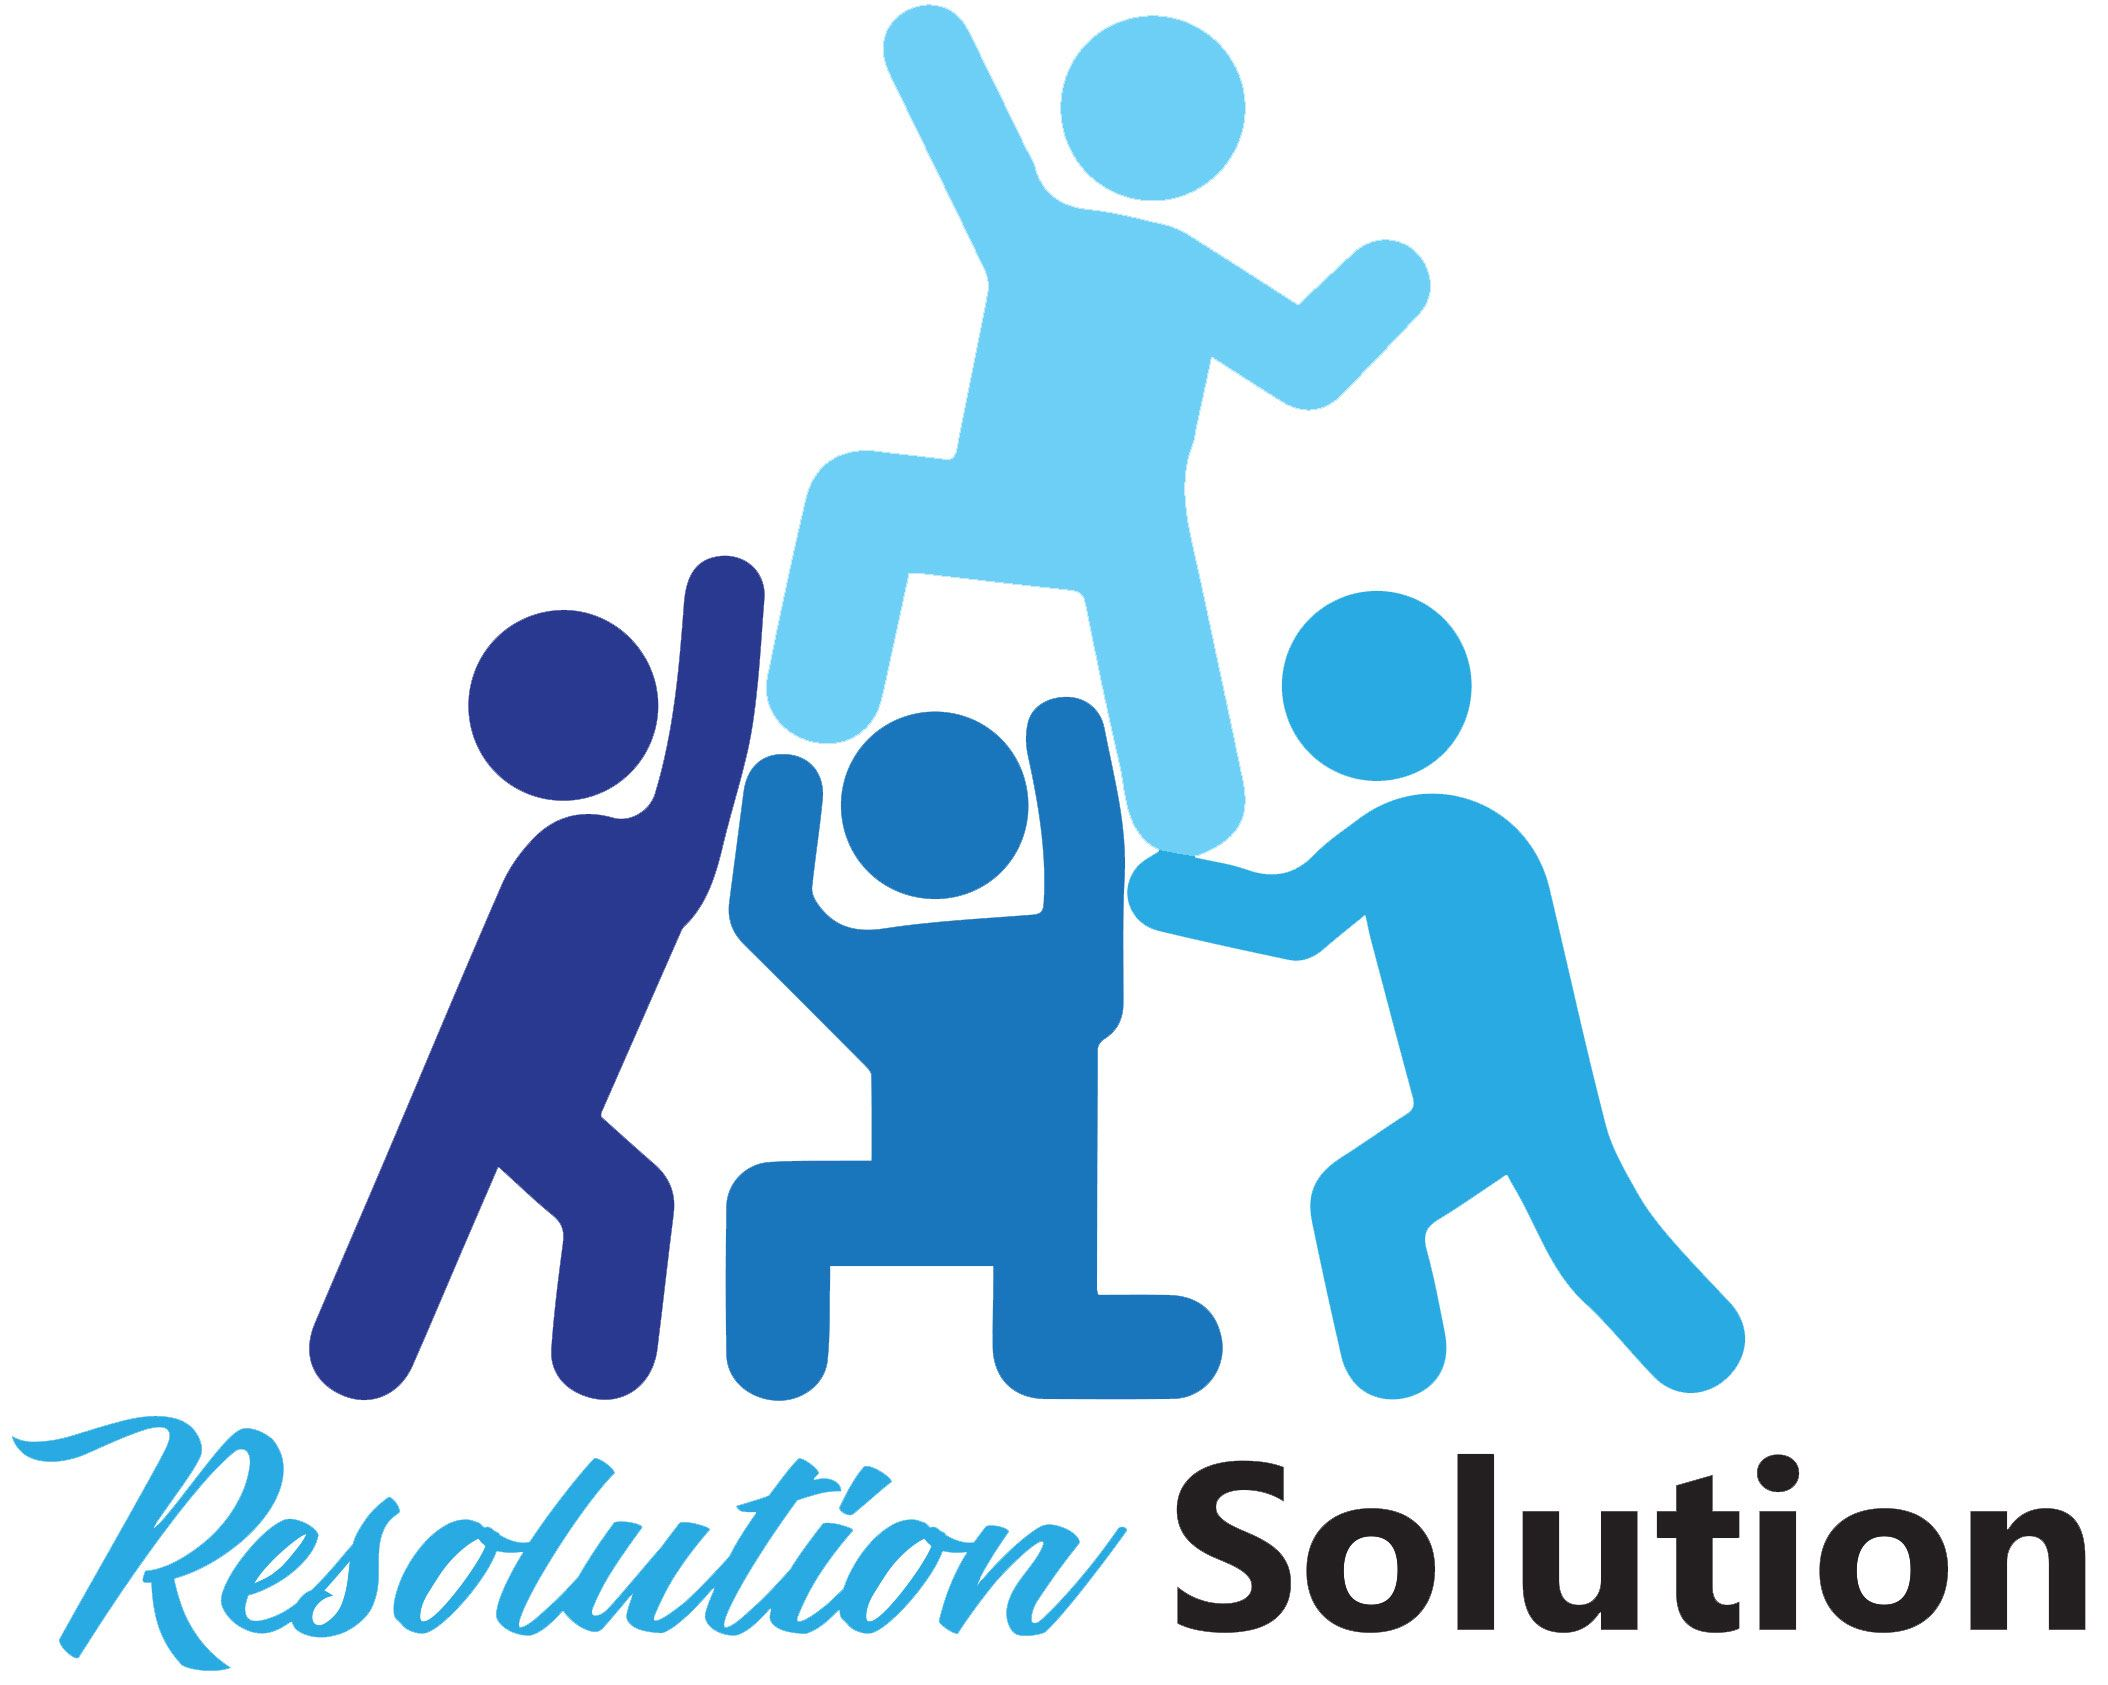 Resolution Solution Logo